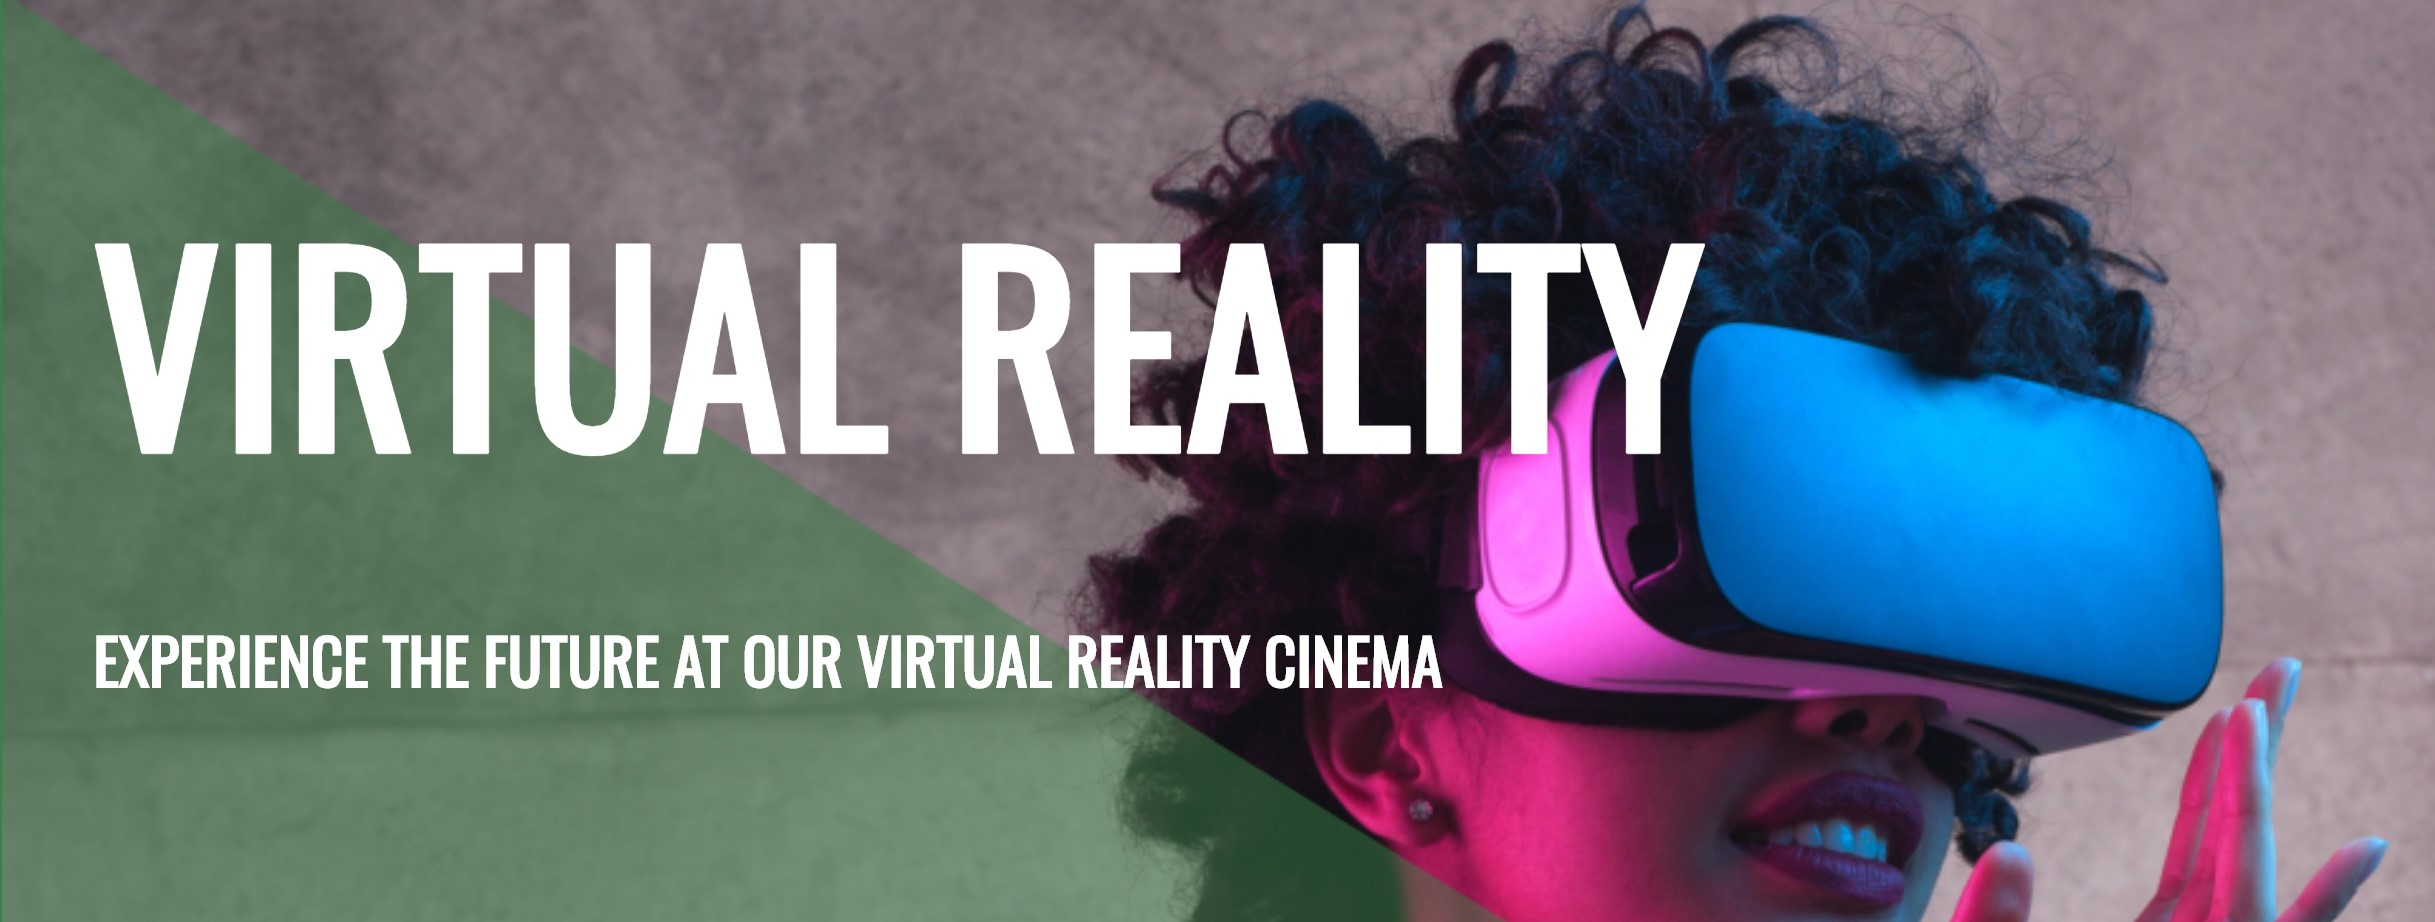 VR CINEMA - Carlow Arts Festival